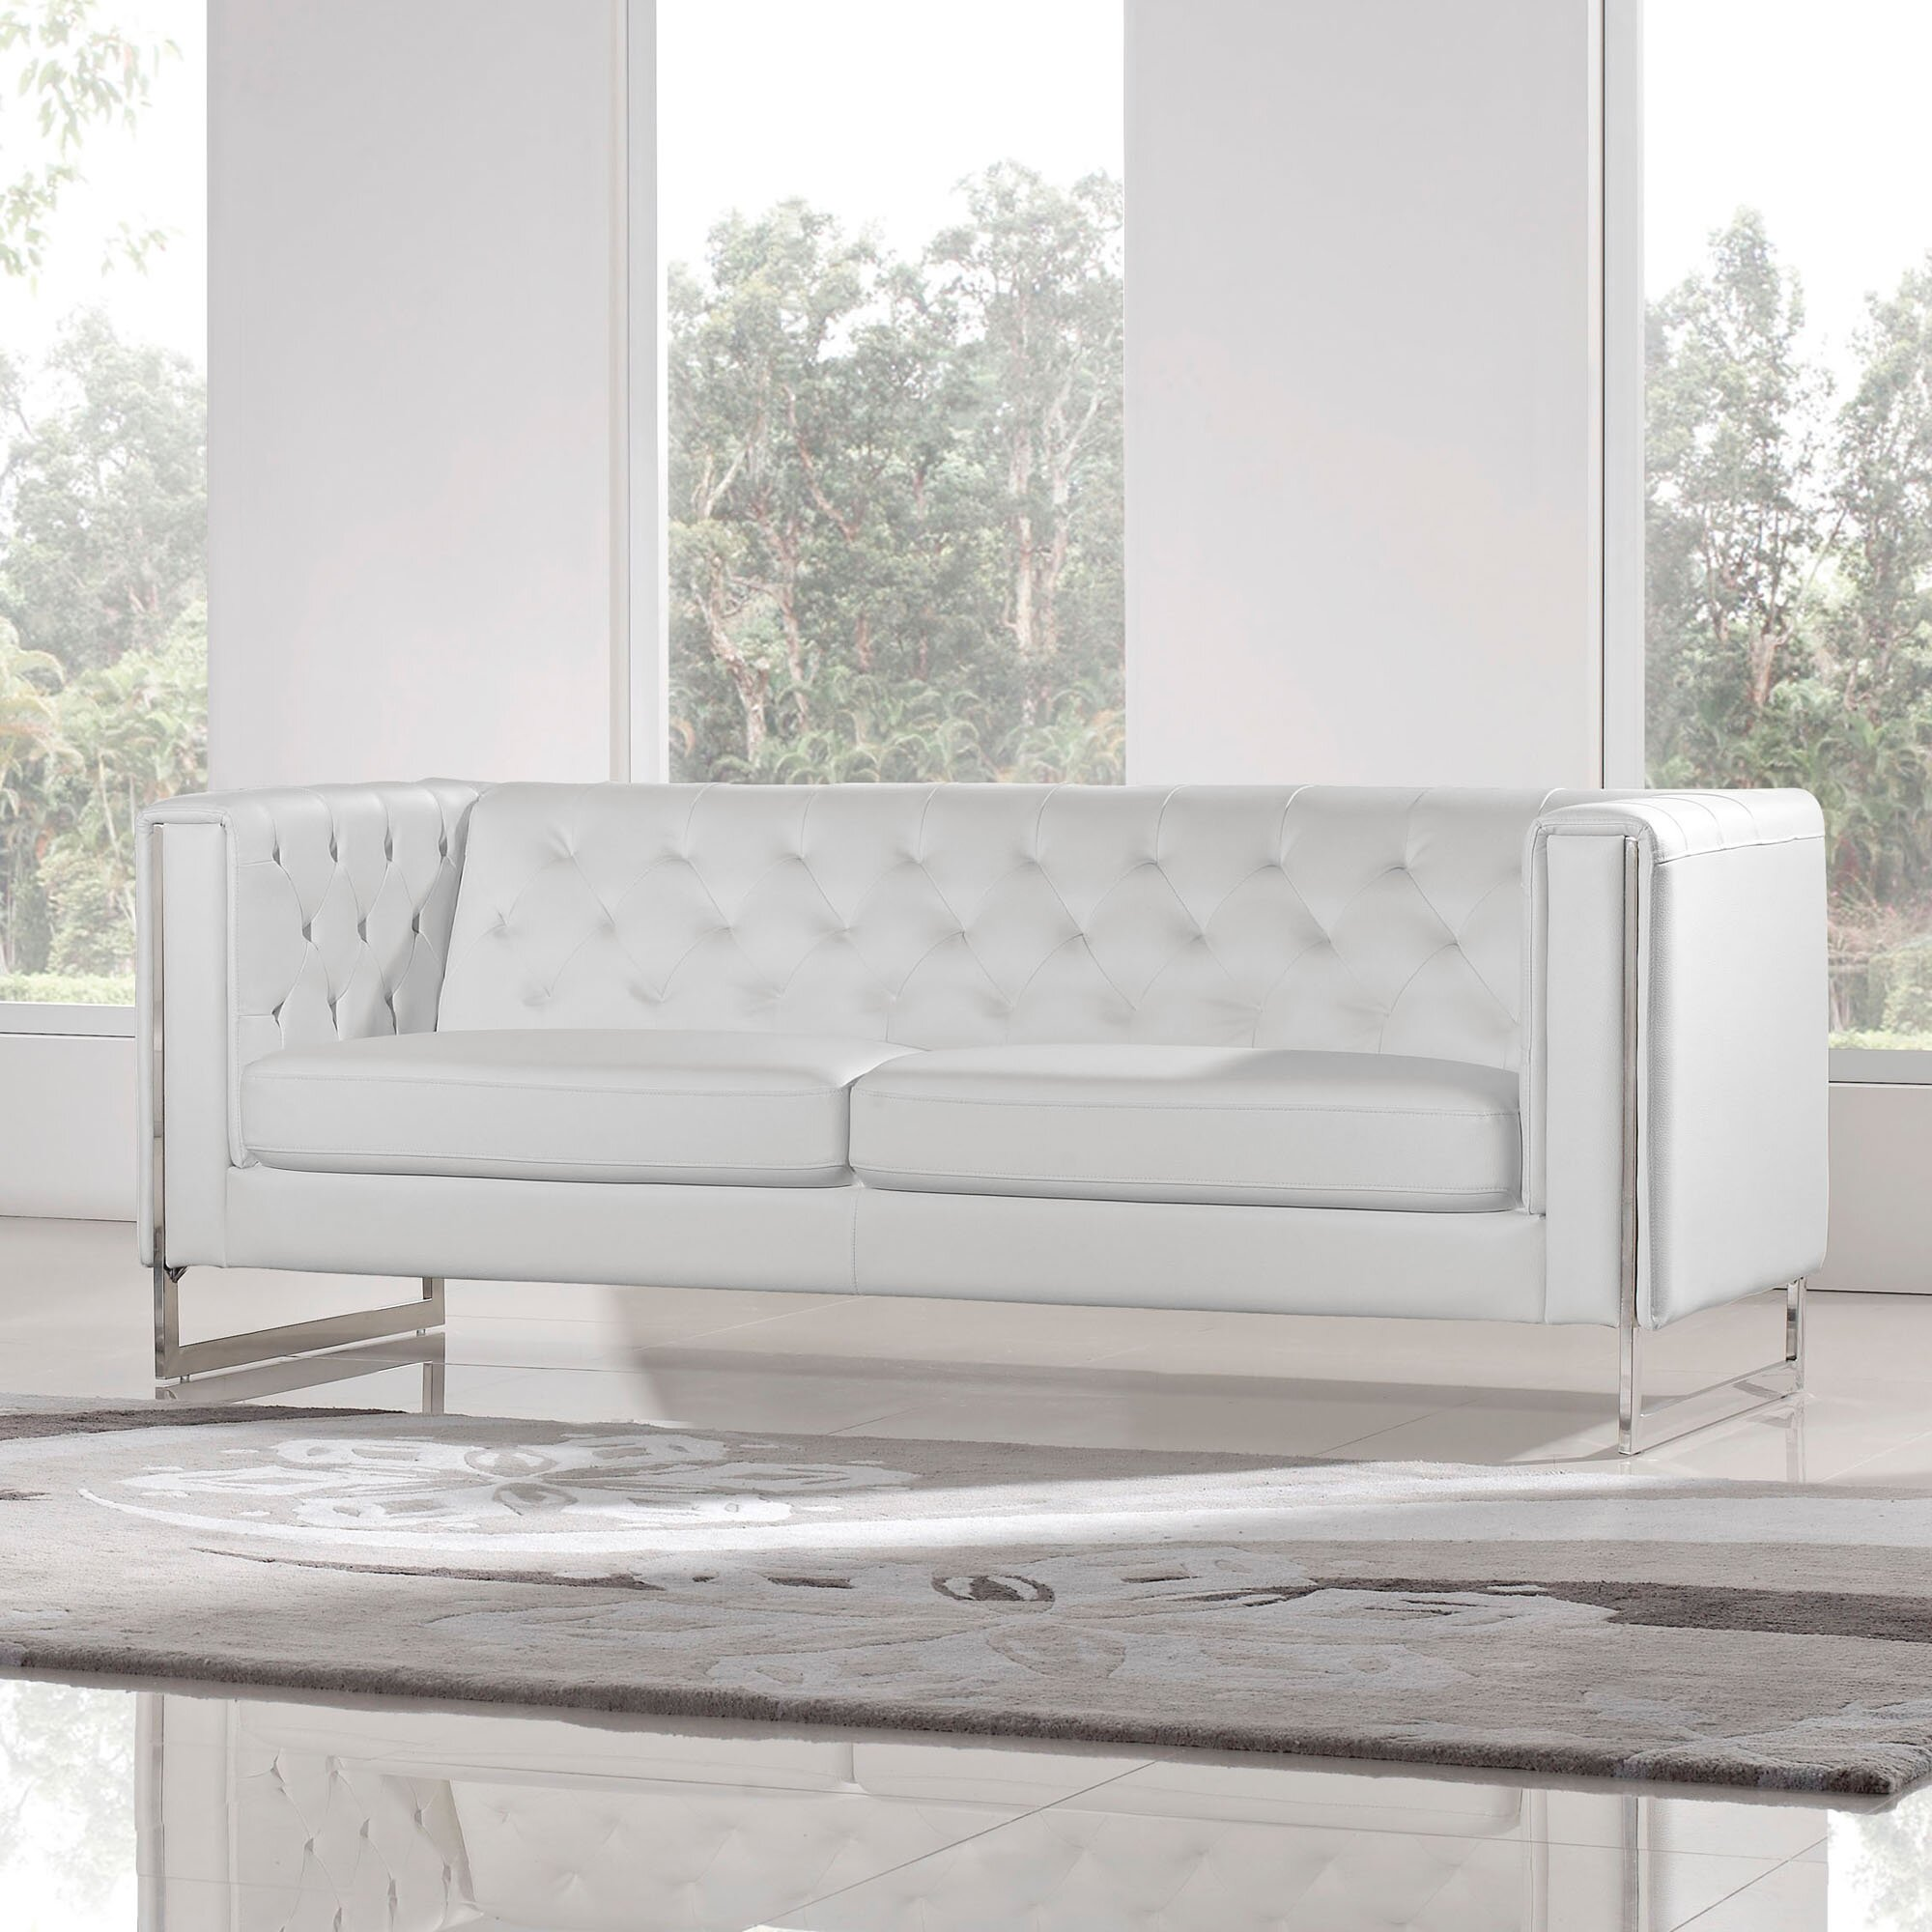 and tight diamond the sofa features clean contemporary axis sweeping back lines tufted track pin a with